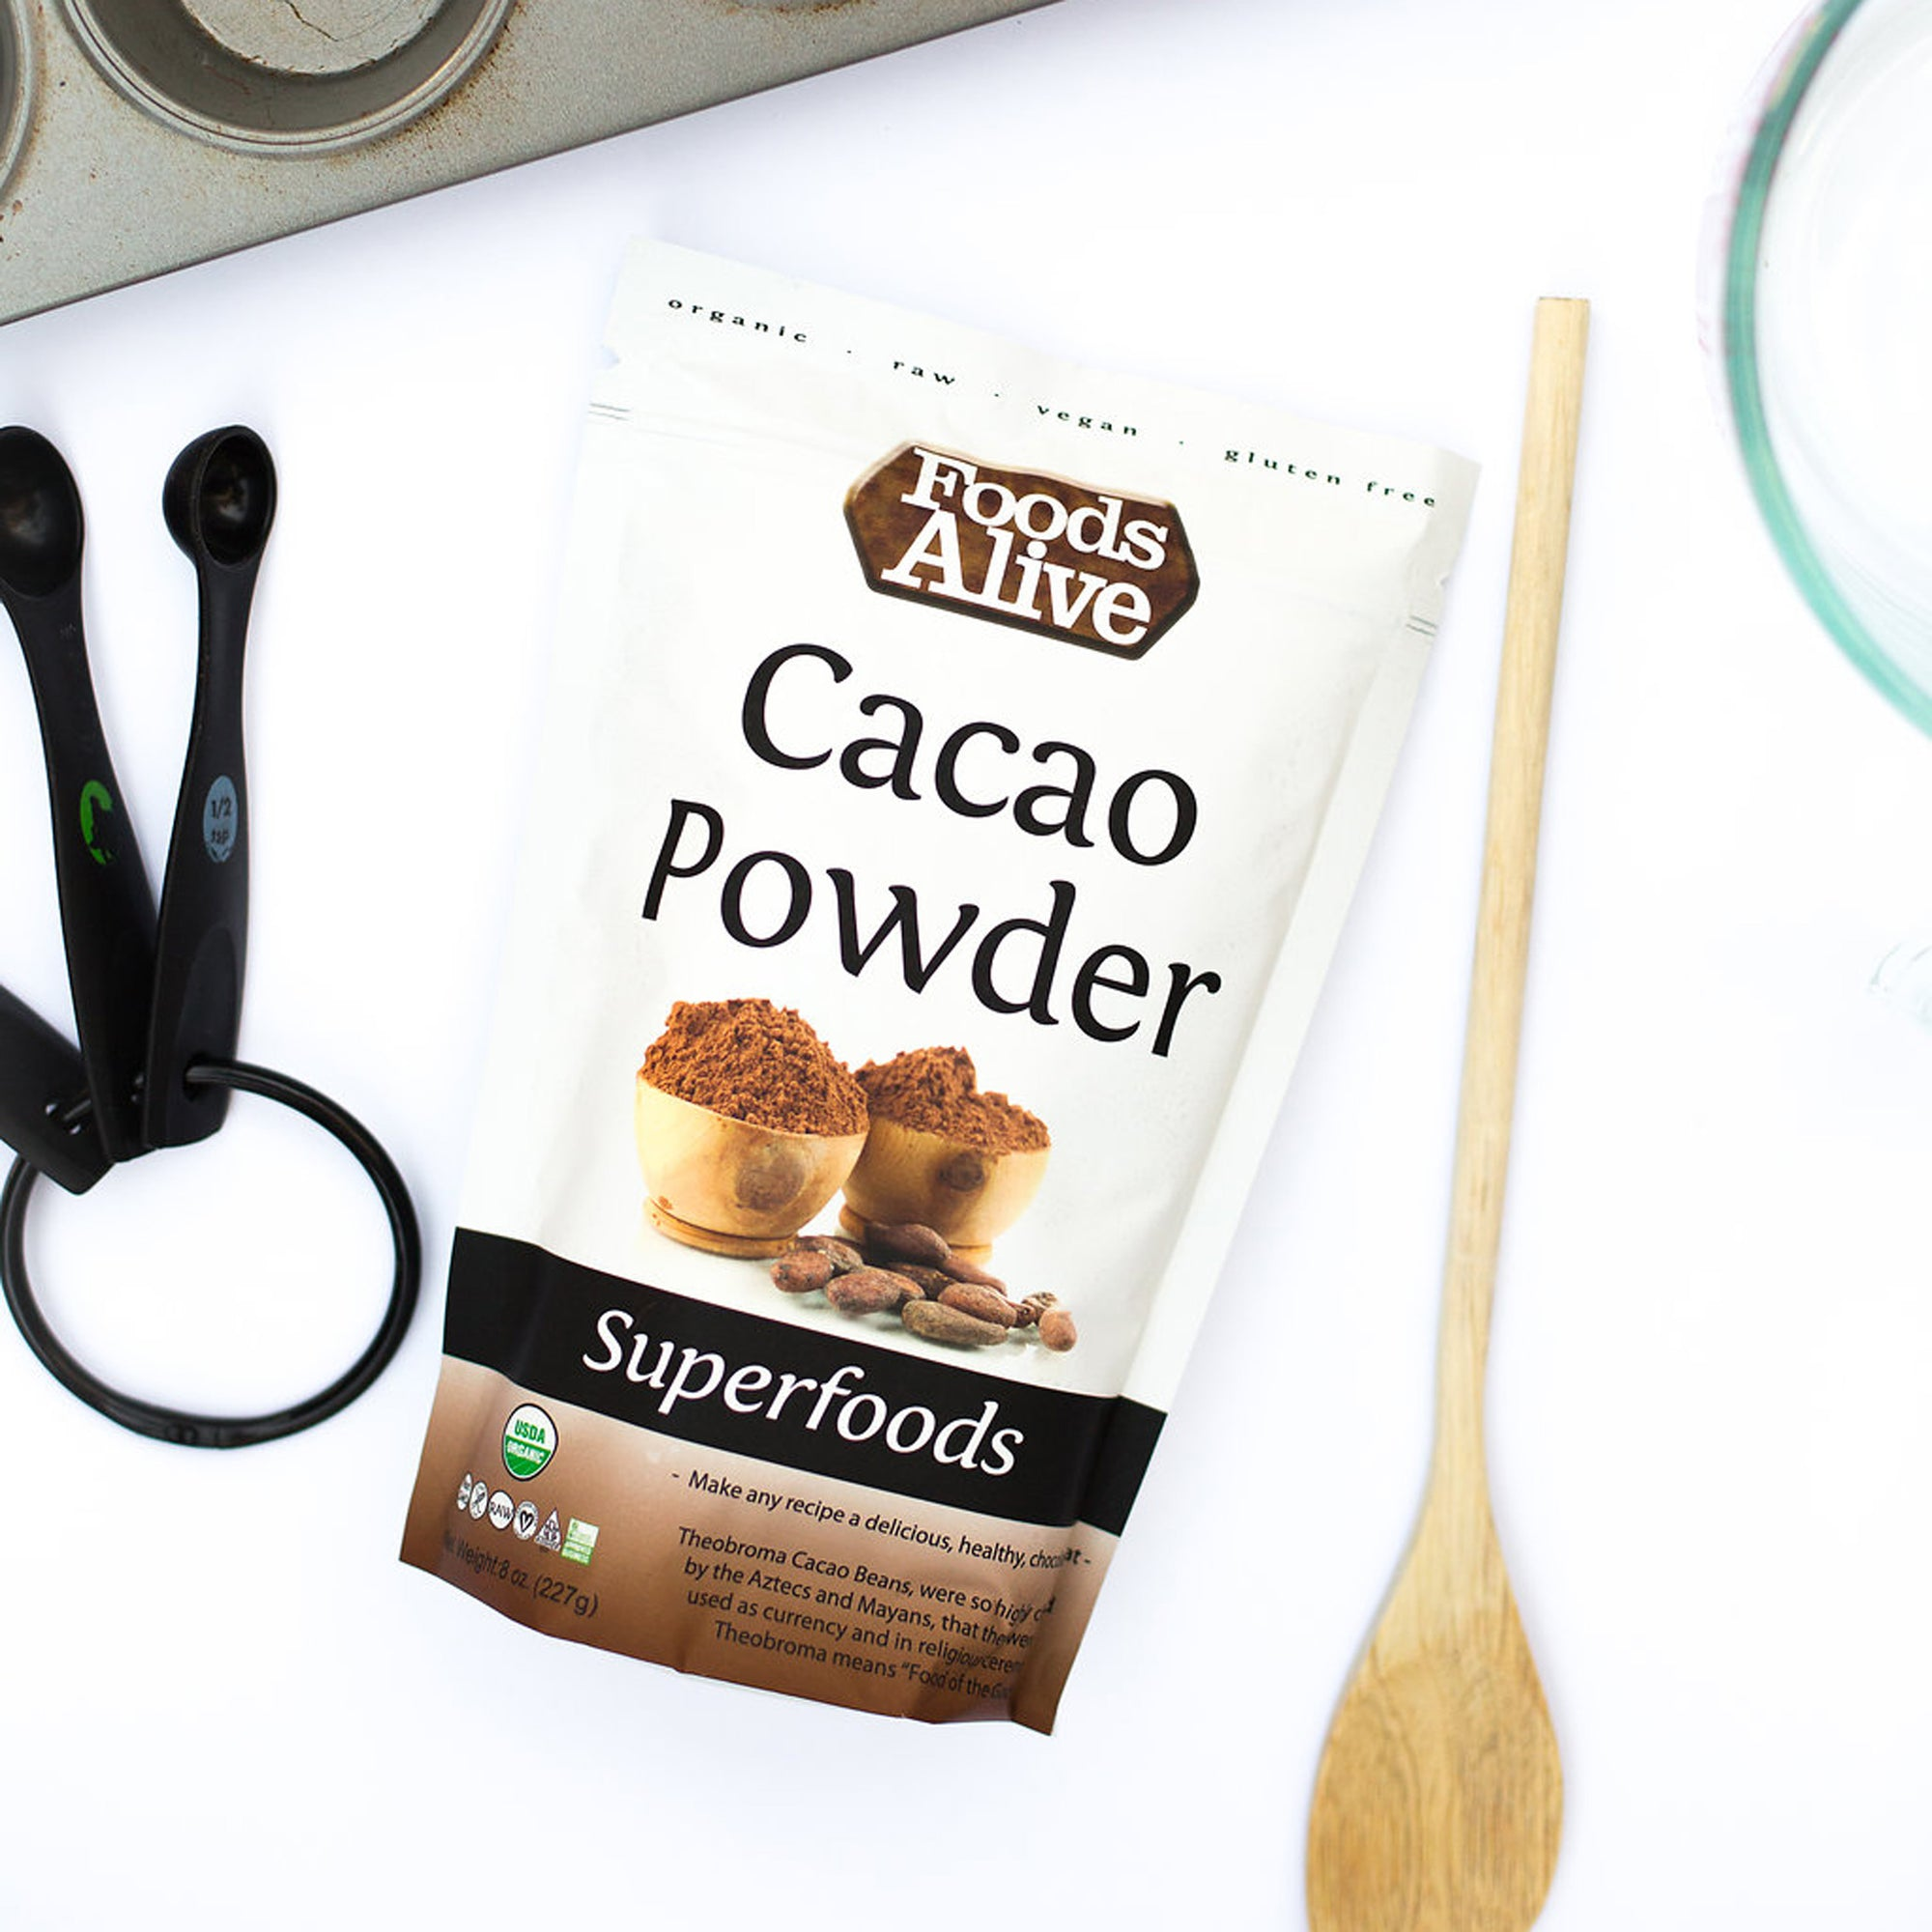 8 Scientifically Backed Benefits of Cacao Powder - Foods Alive